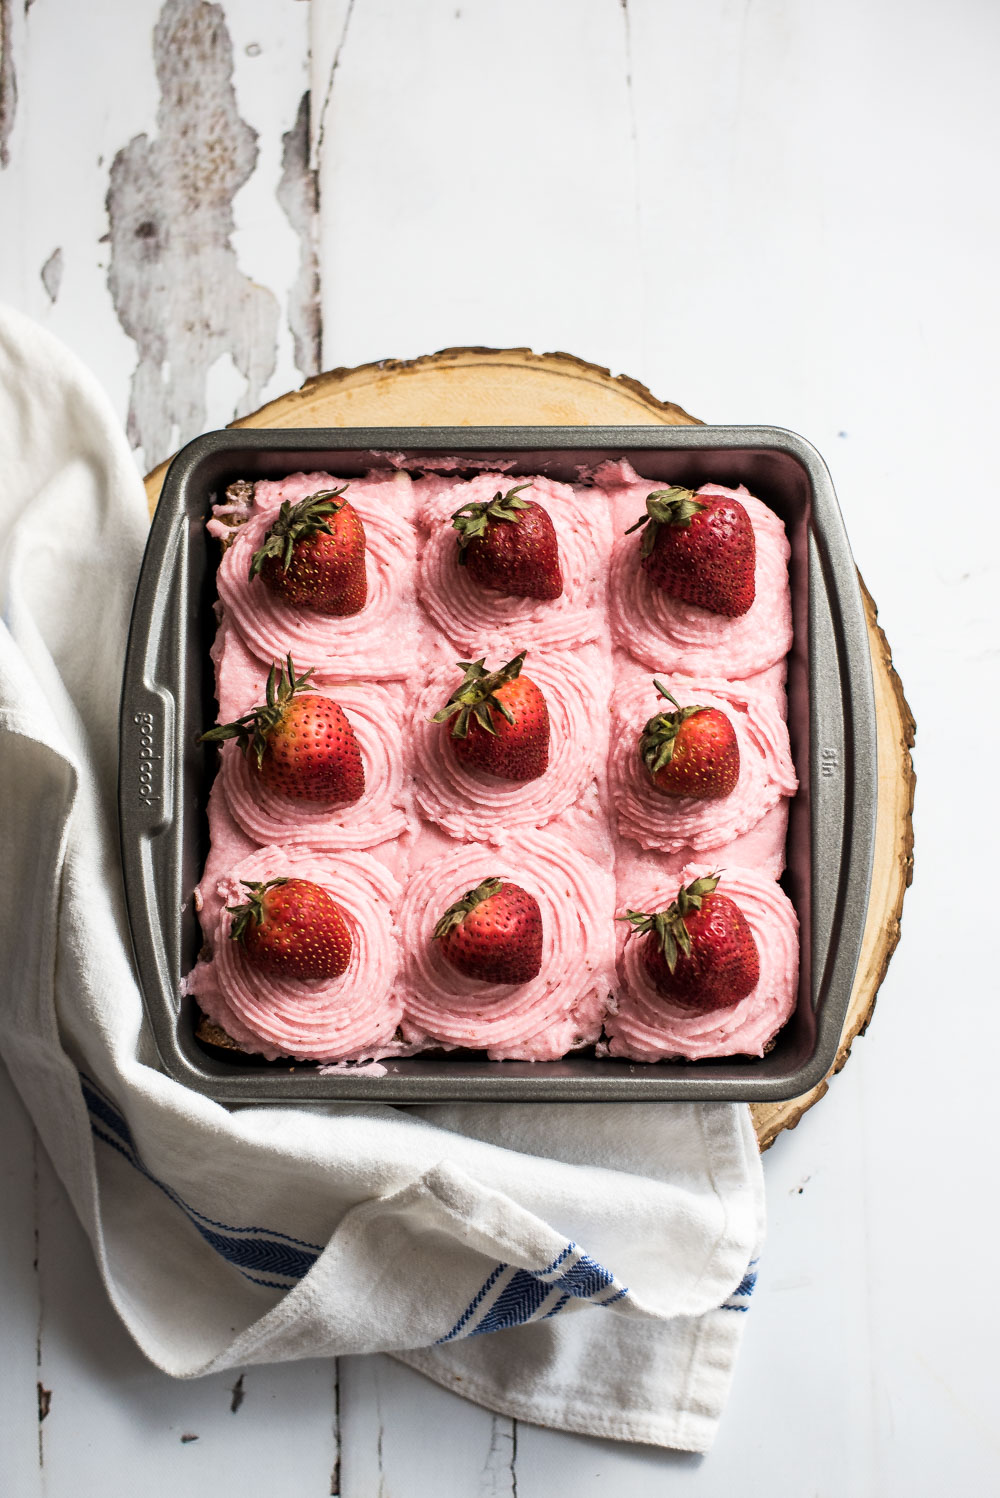 These Fudgy Chocolate Stout Brownies with Strawberry Buttercream are the perfect spring treat. They are bursting with strawberry flavor!